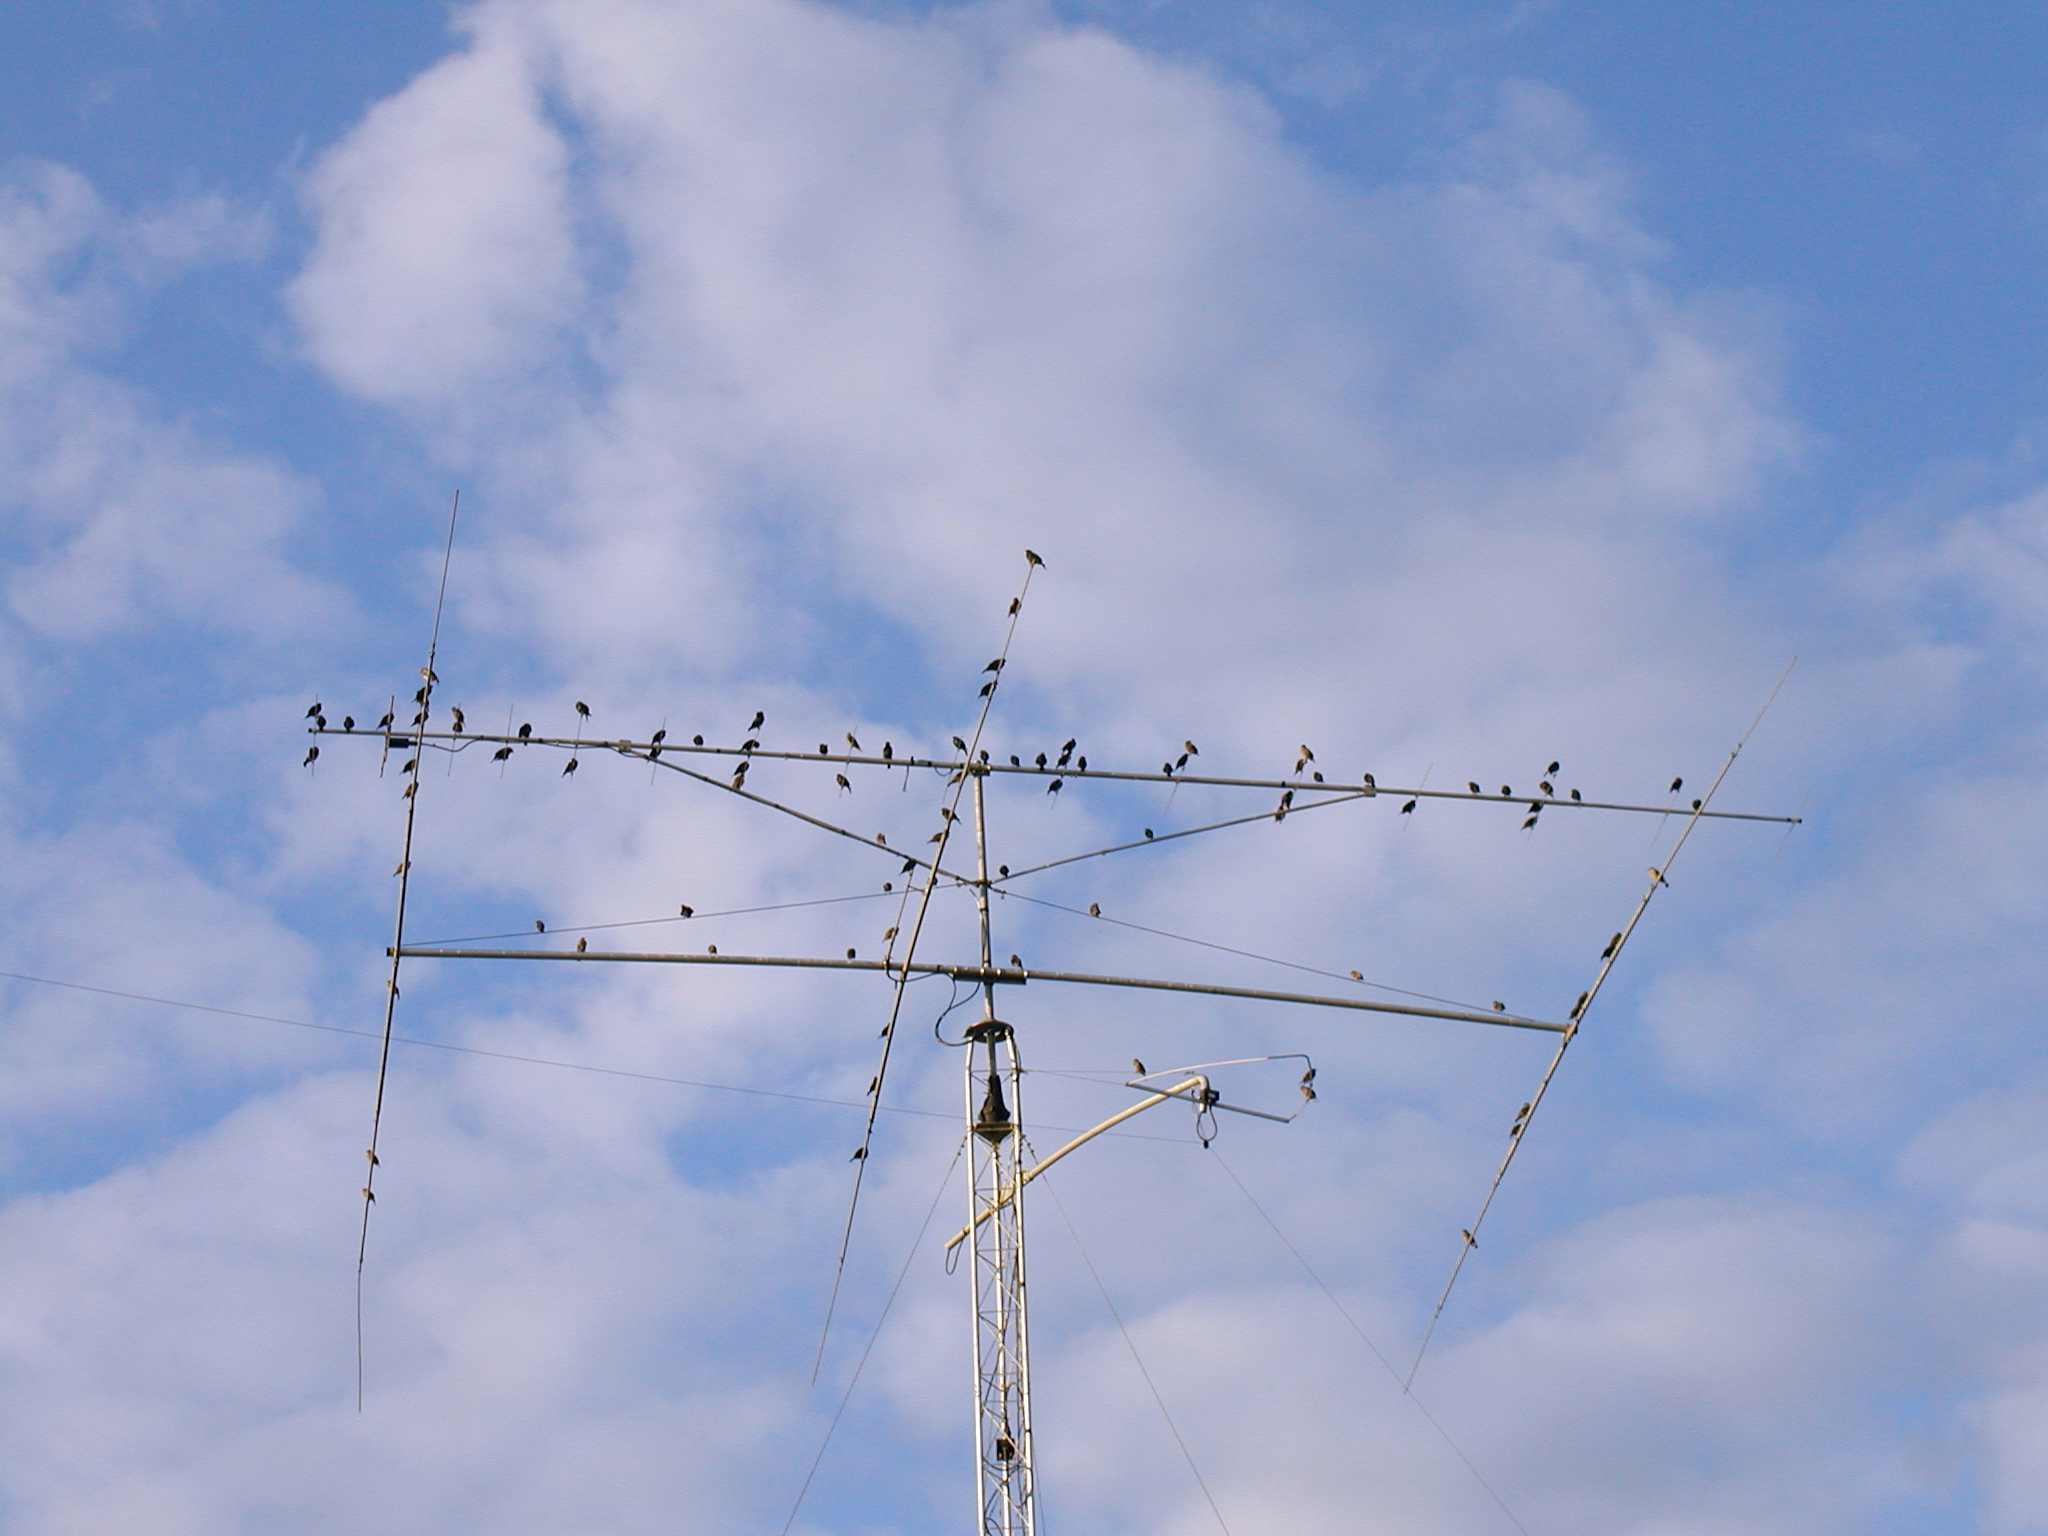 Ham Radio Antenna Ham radio operators like birds